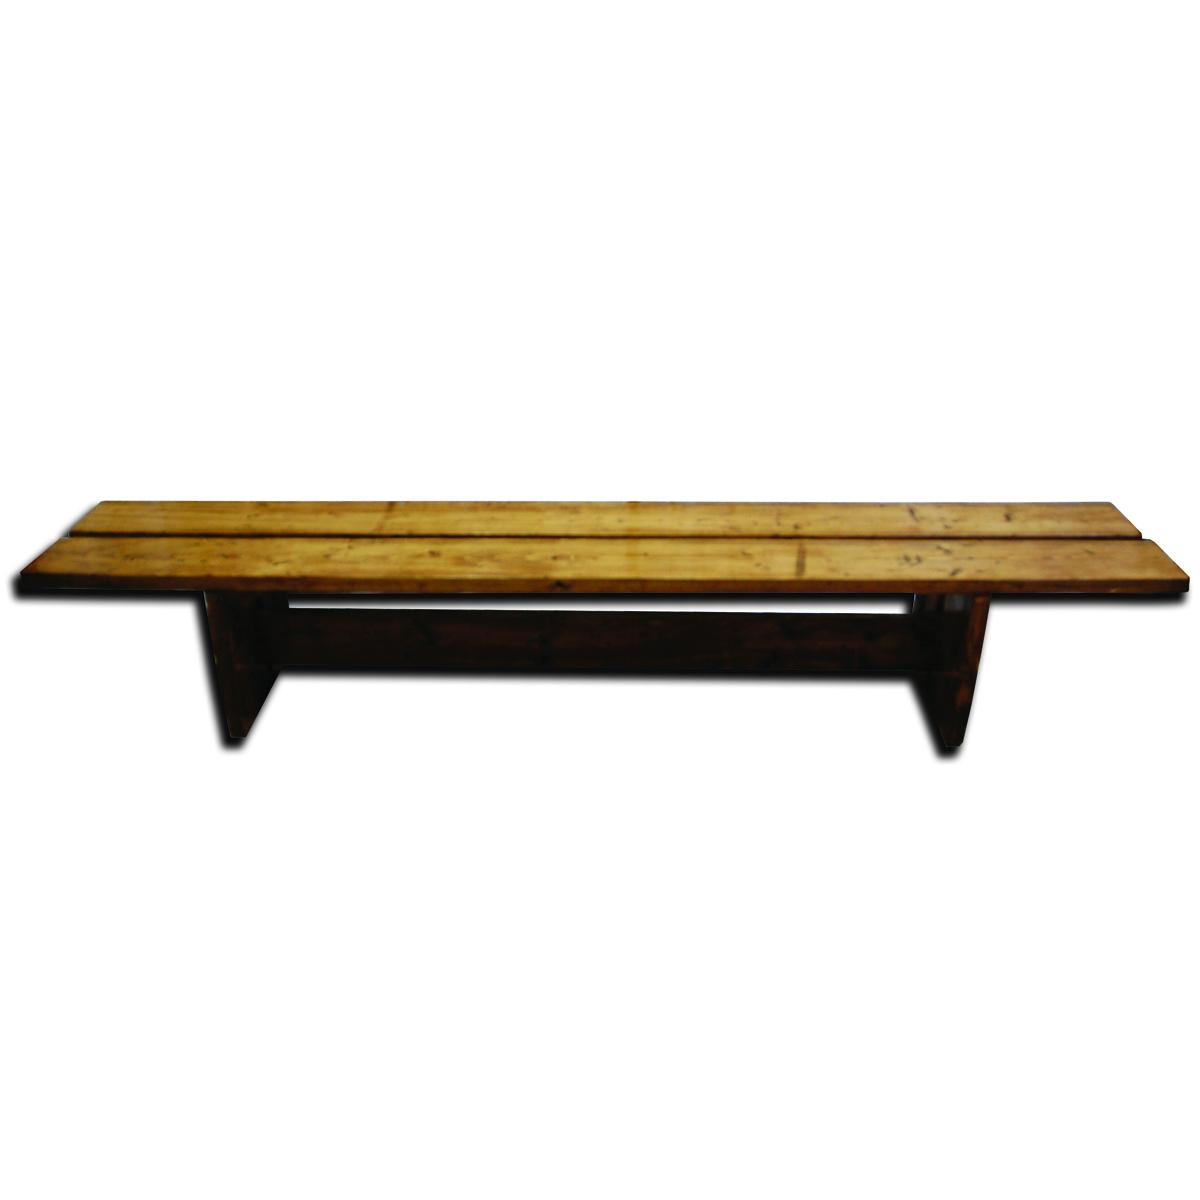 Phenomenal Wooden Bench 8 Peak Event Services Gmtry Best Dining Table And Chair Ideas Images Gmtryco